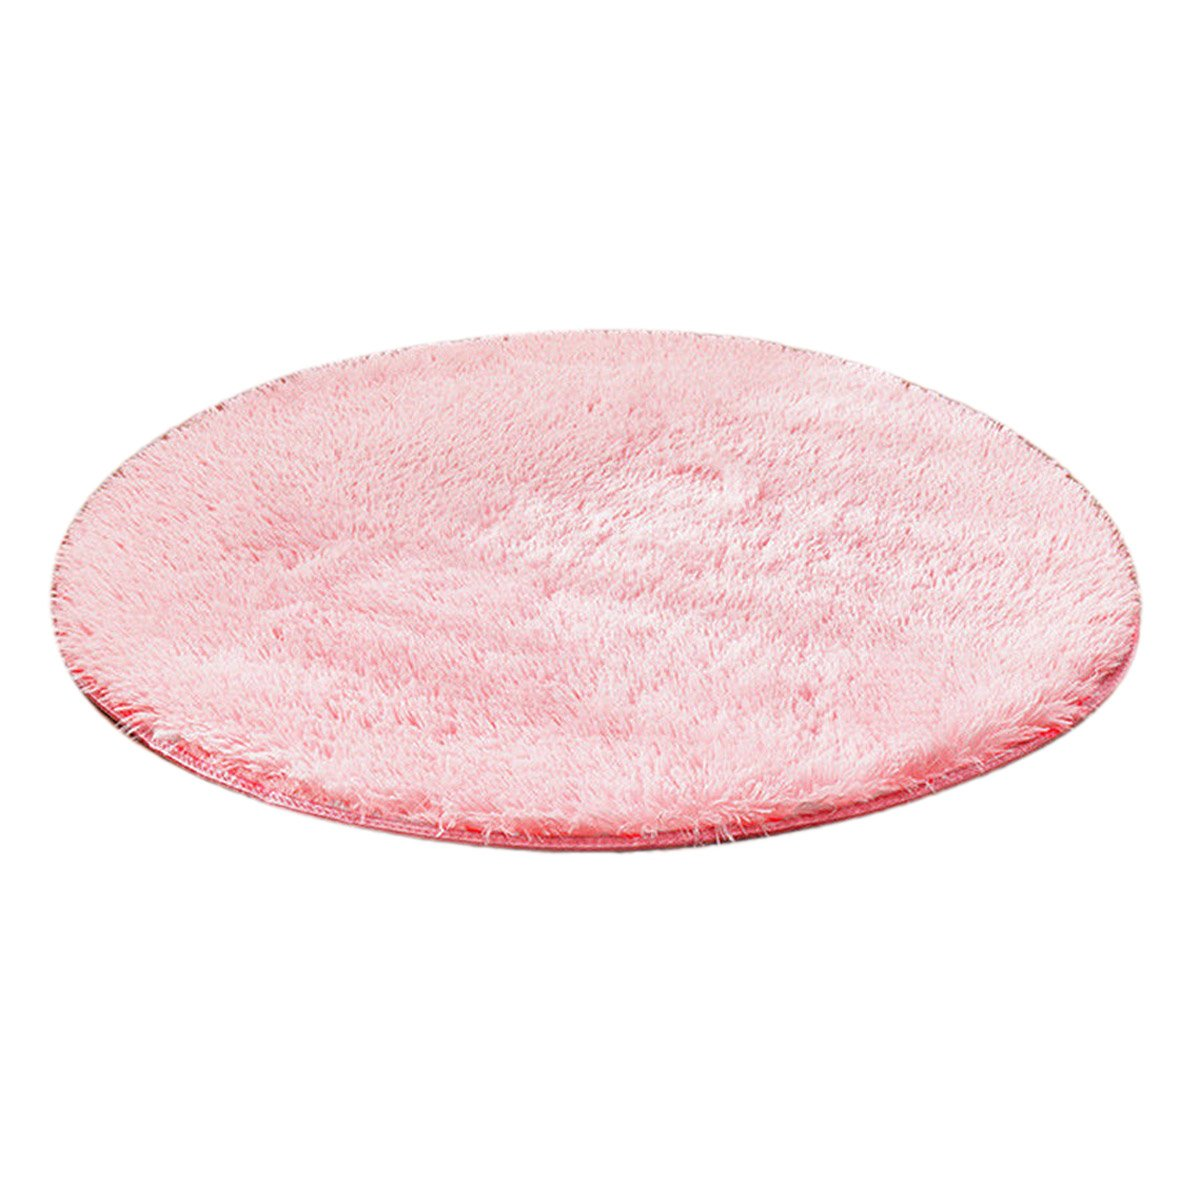 4ft Round Area Rug for Living Room Bedroom Kids Play Tent Solid Hot Pink Ebest